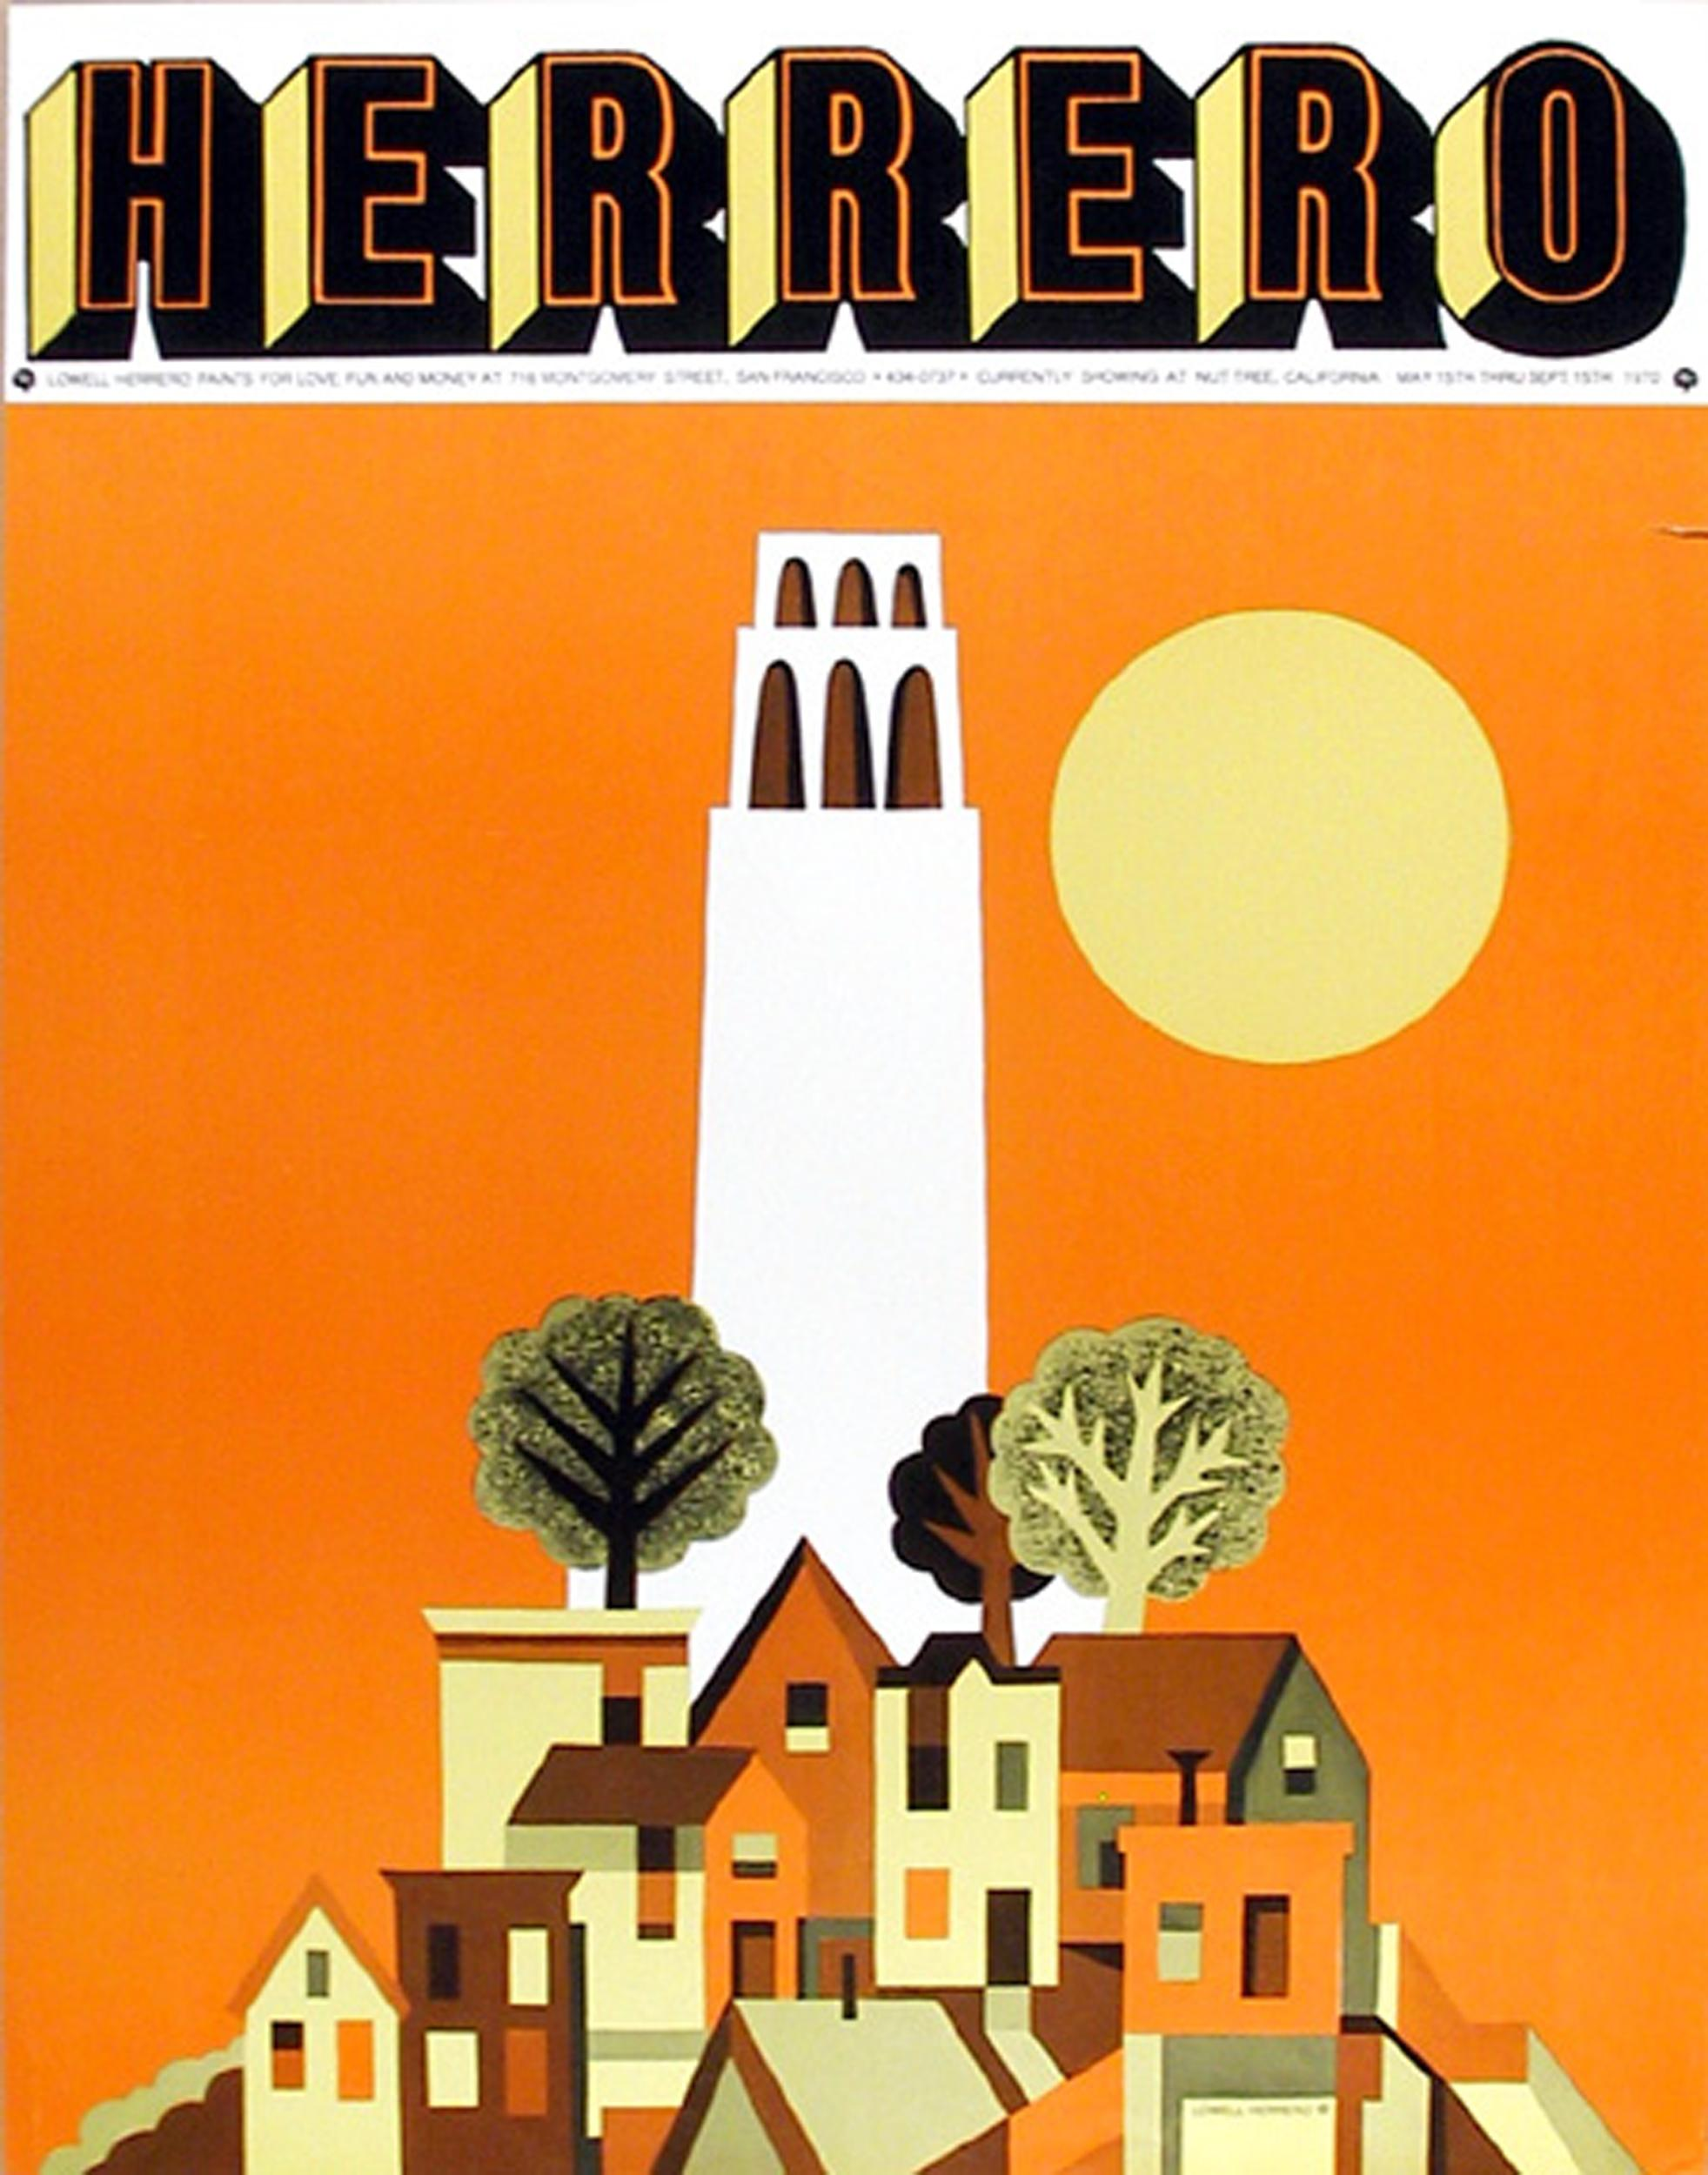 Lowell Herrero, Untitled, Poster